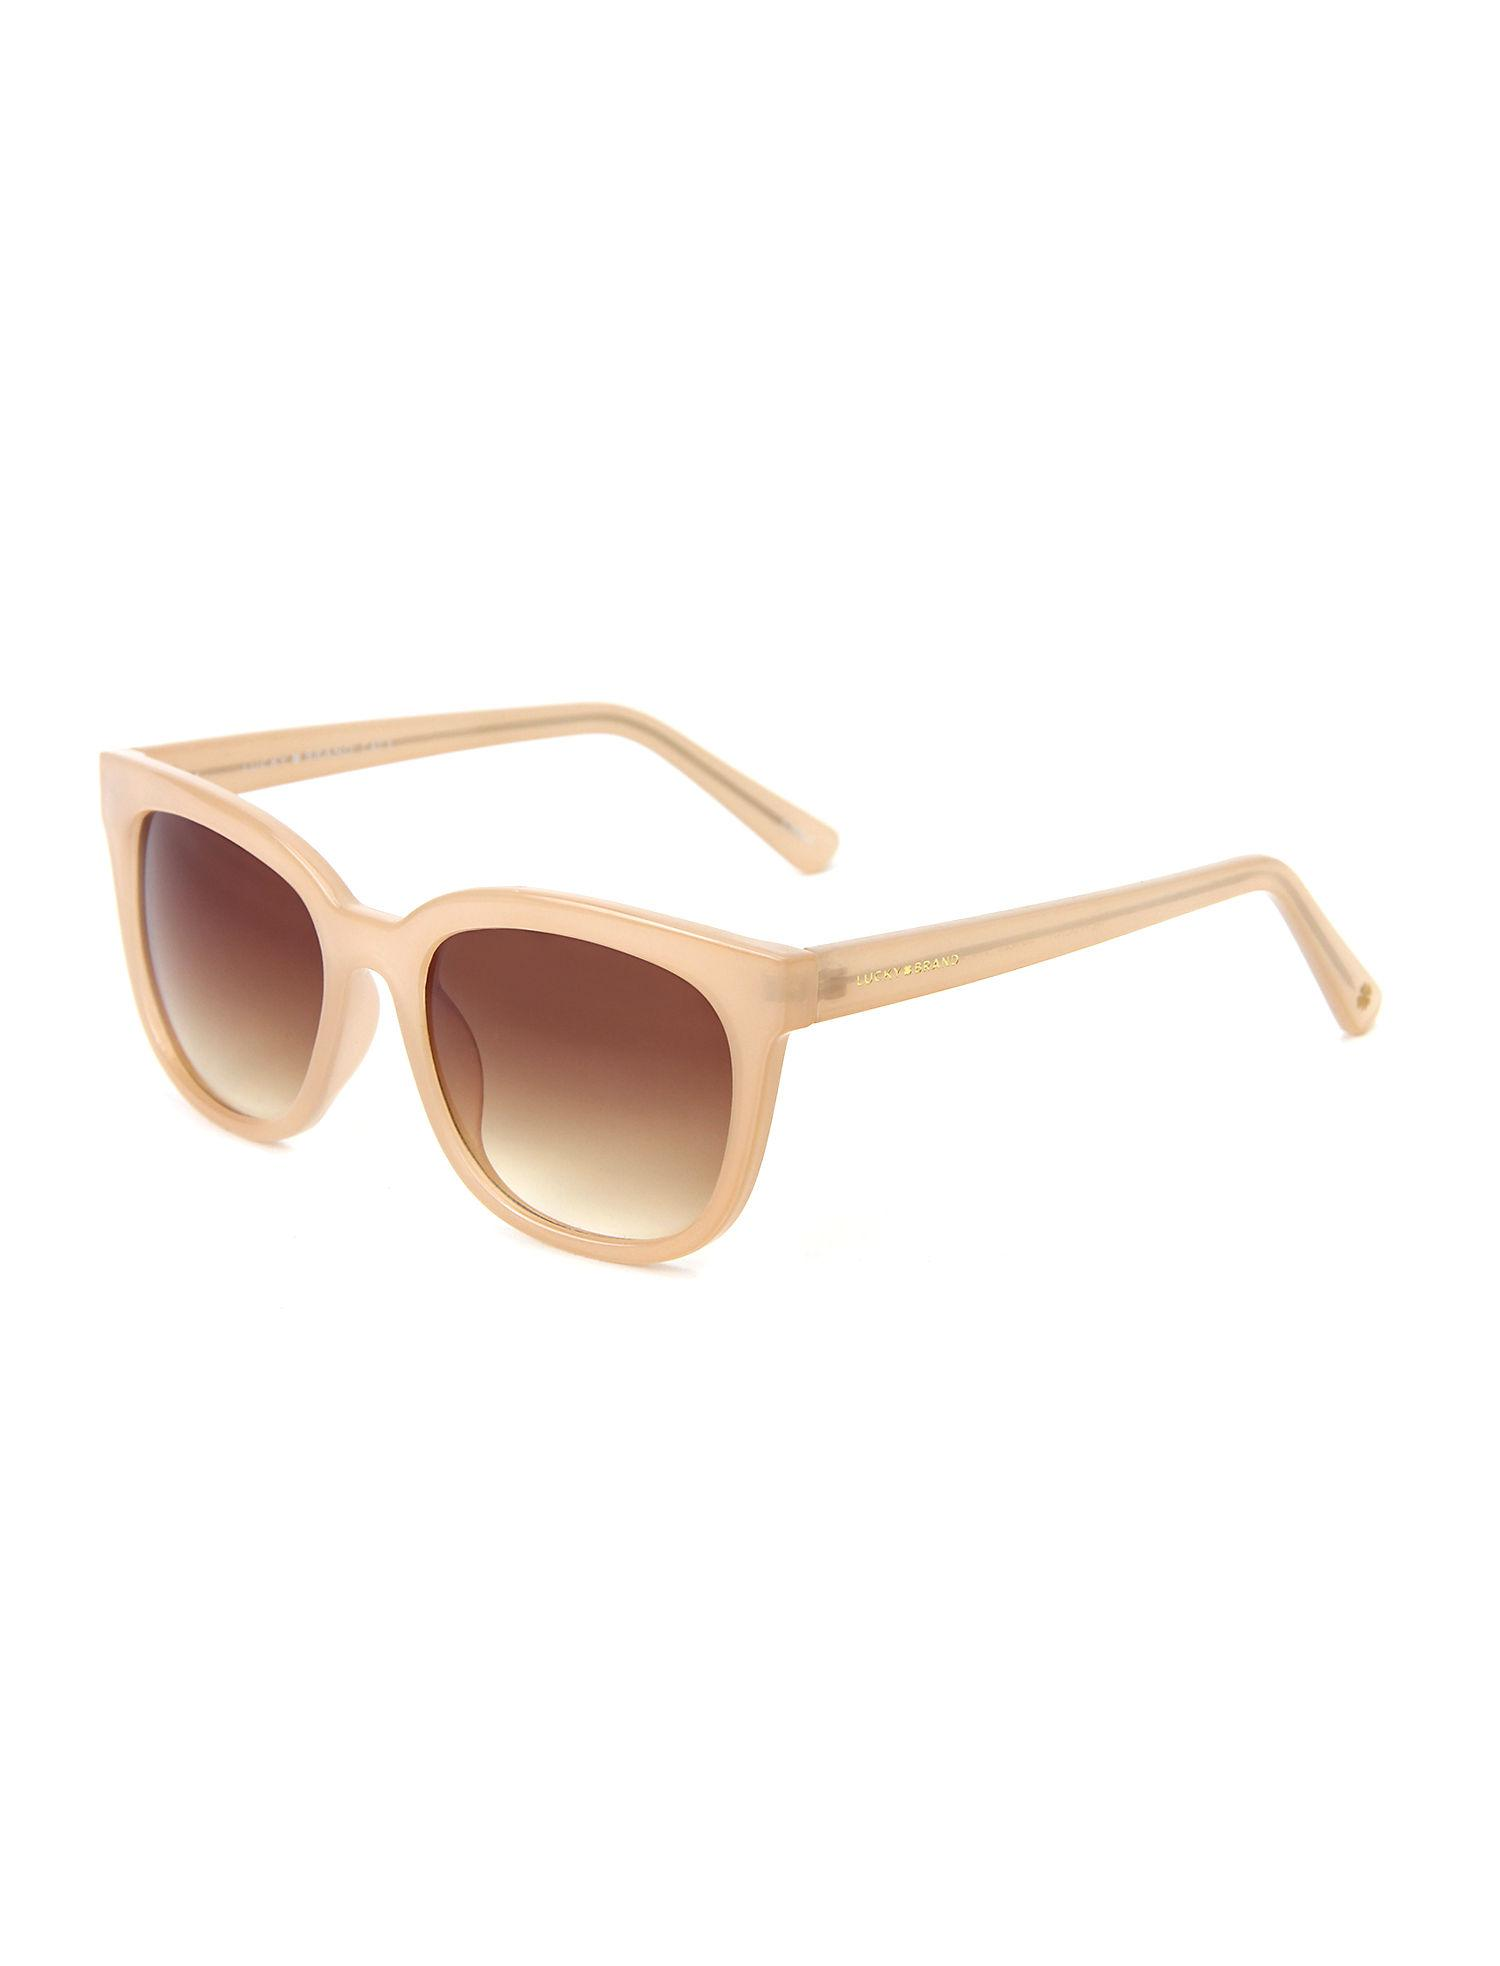 65268374d0f Lyst - Lucky Brand Newberry Sunglasses in Pink